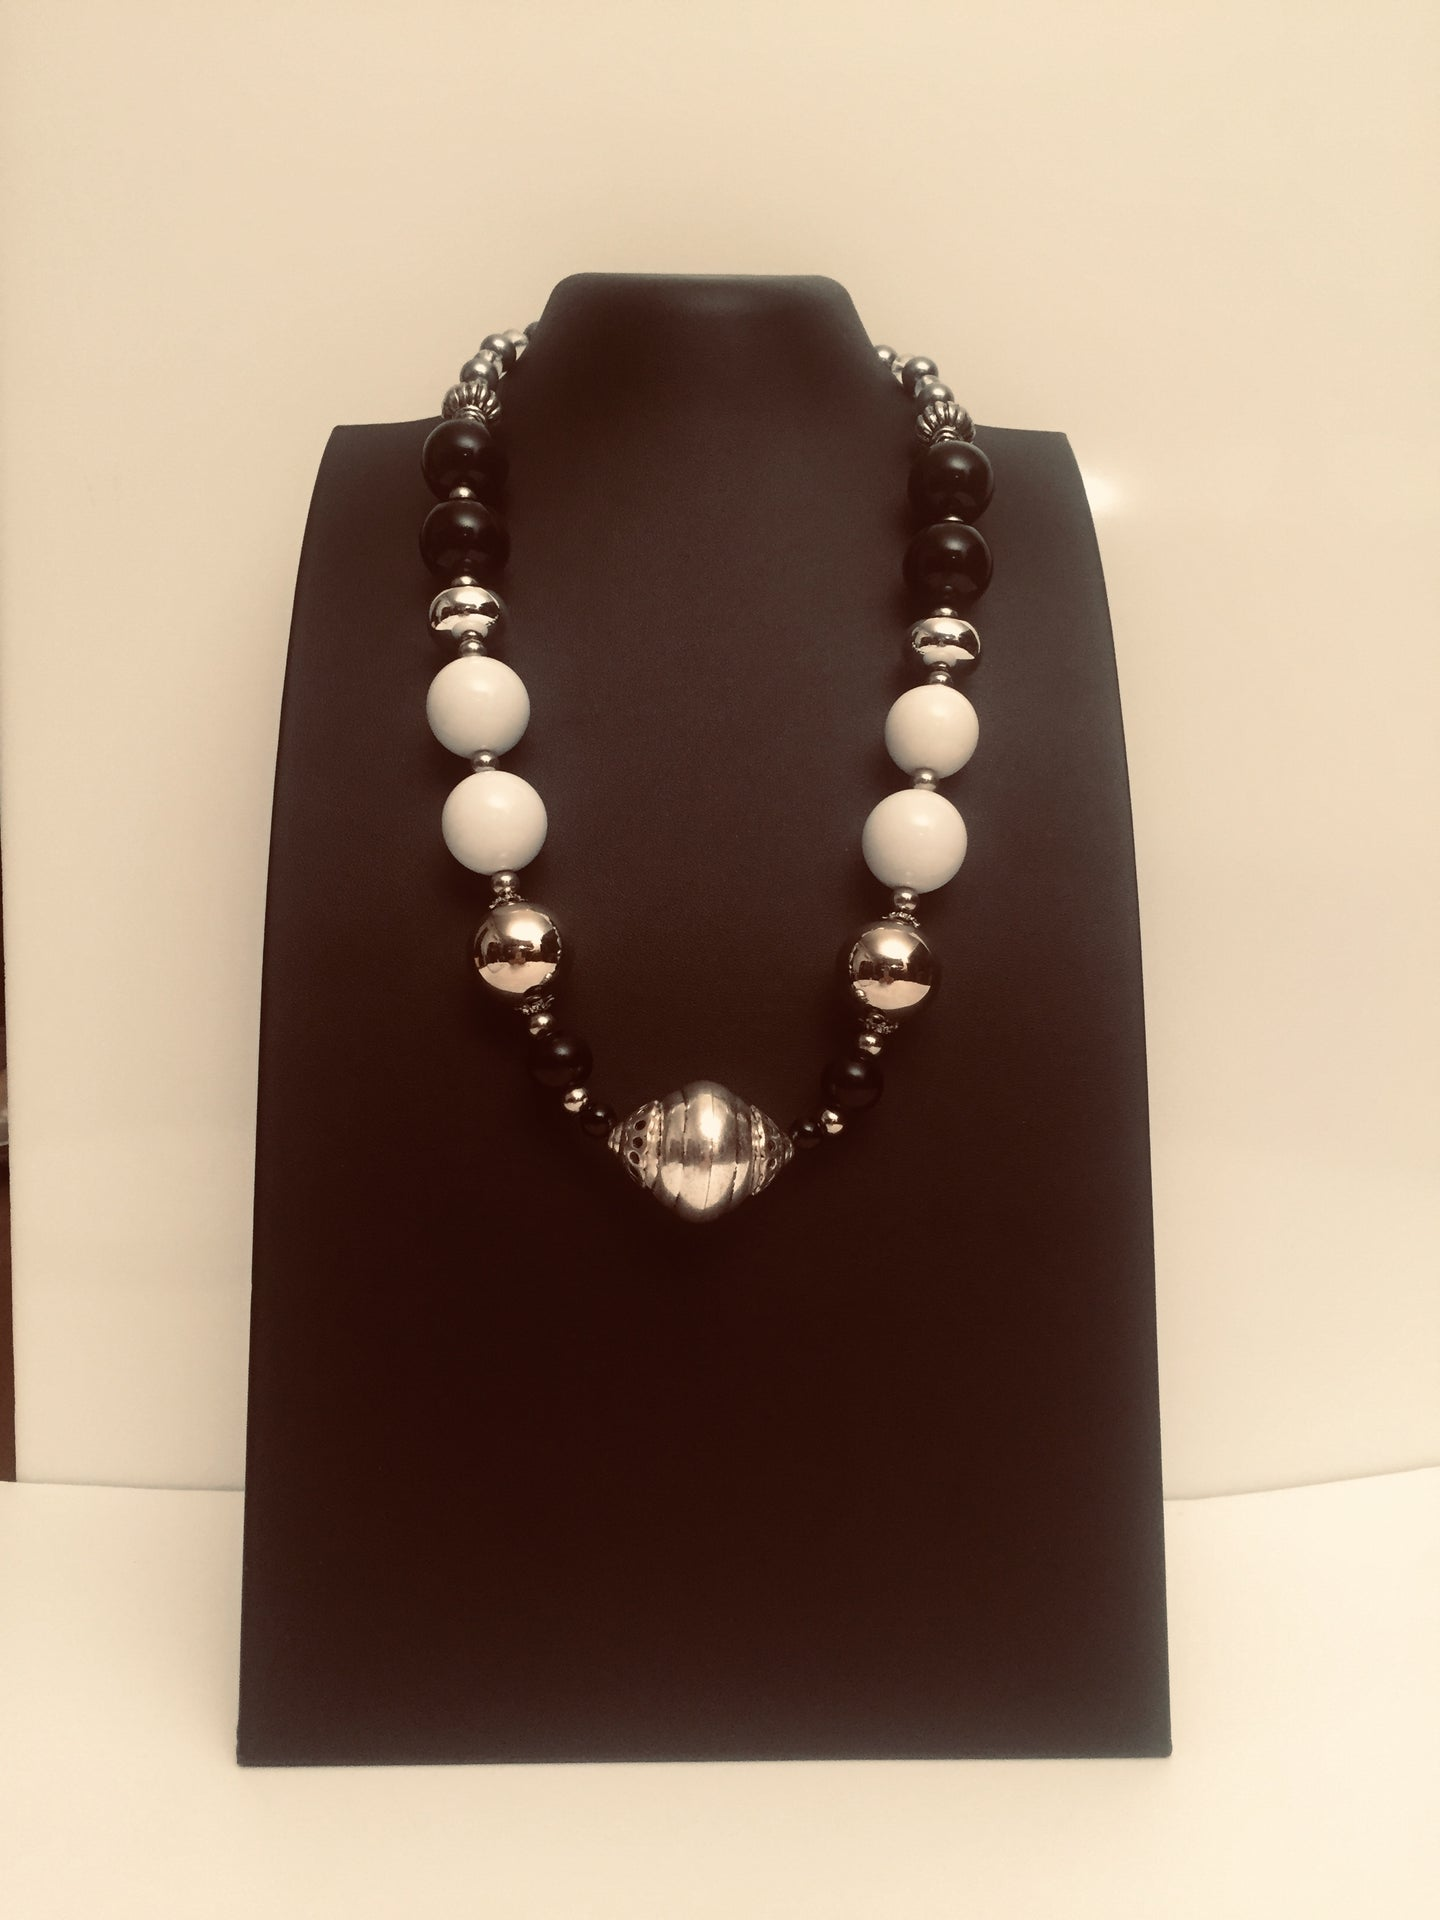 Black Tulip - black and white necklace design